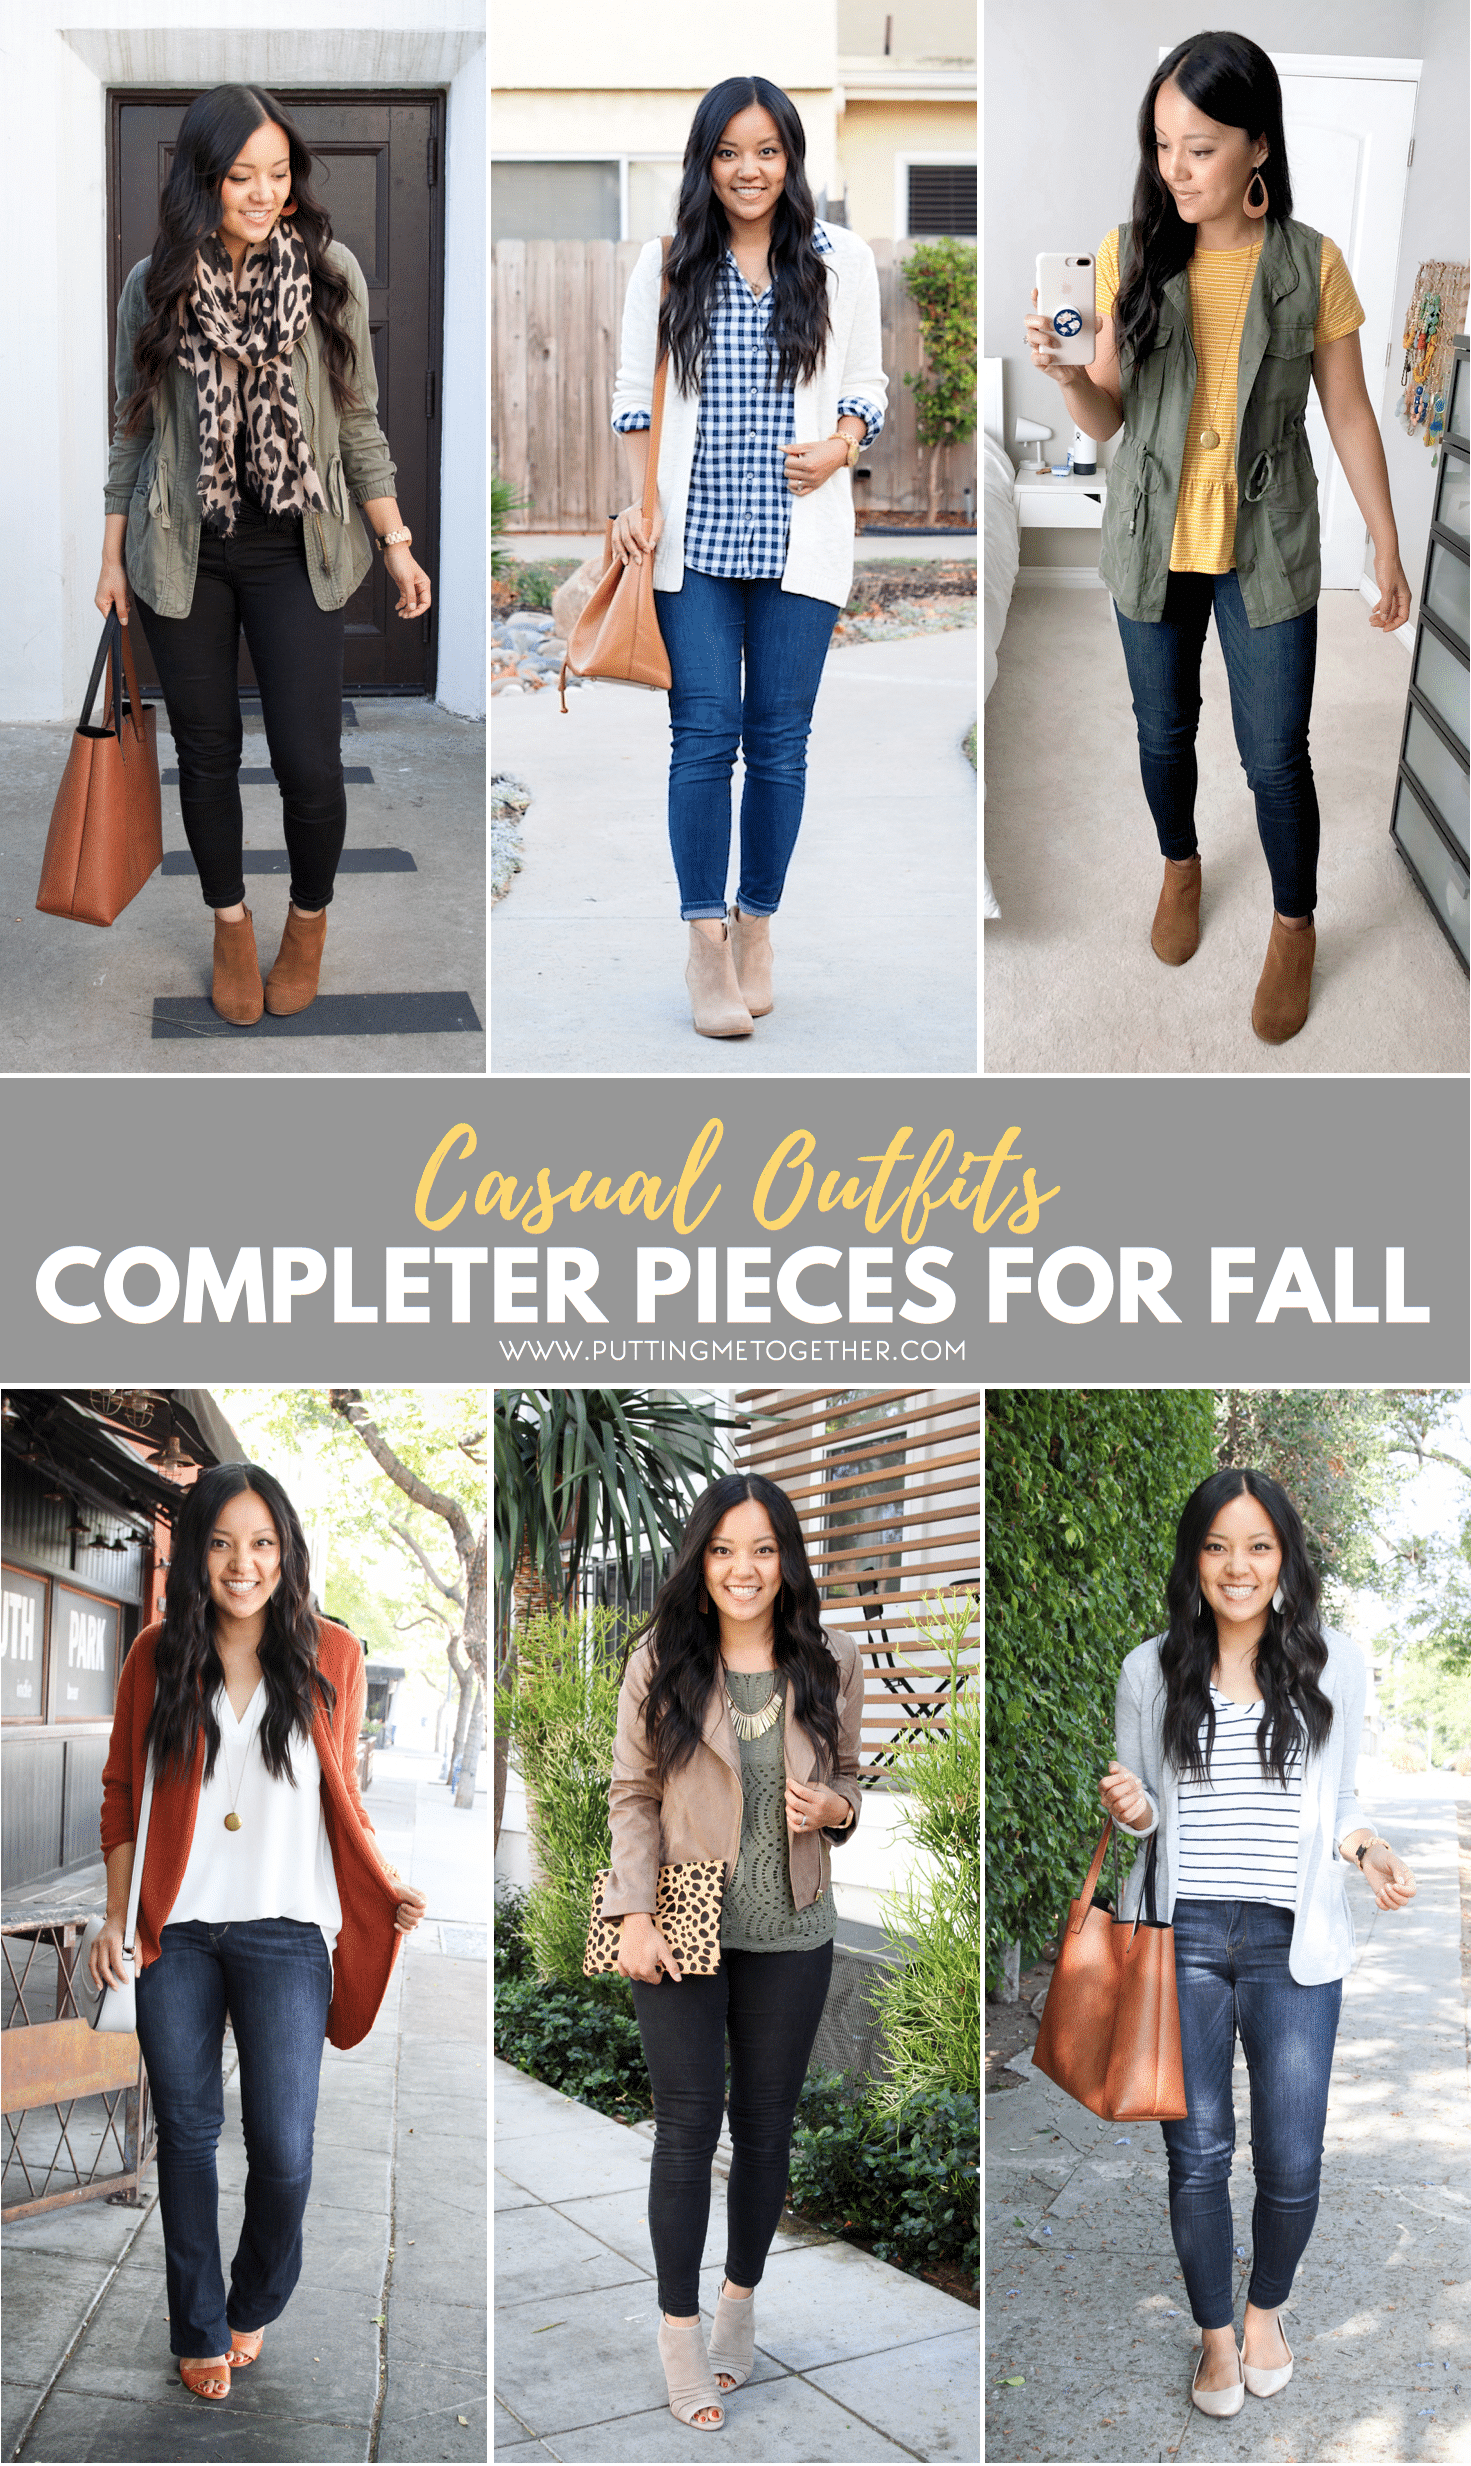 1c26510b7d373 My Top 5 Favorite Go-To Casual Completer Pieces for Fall